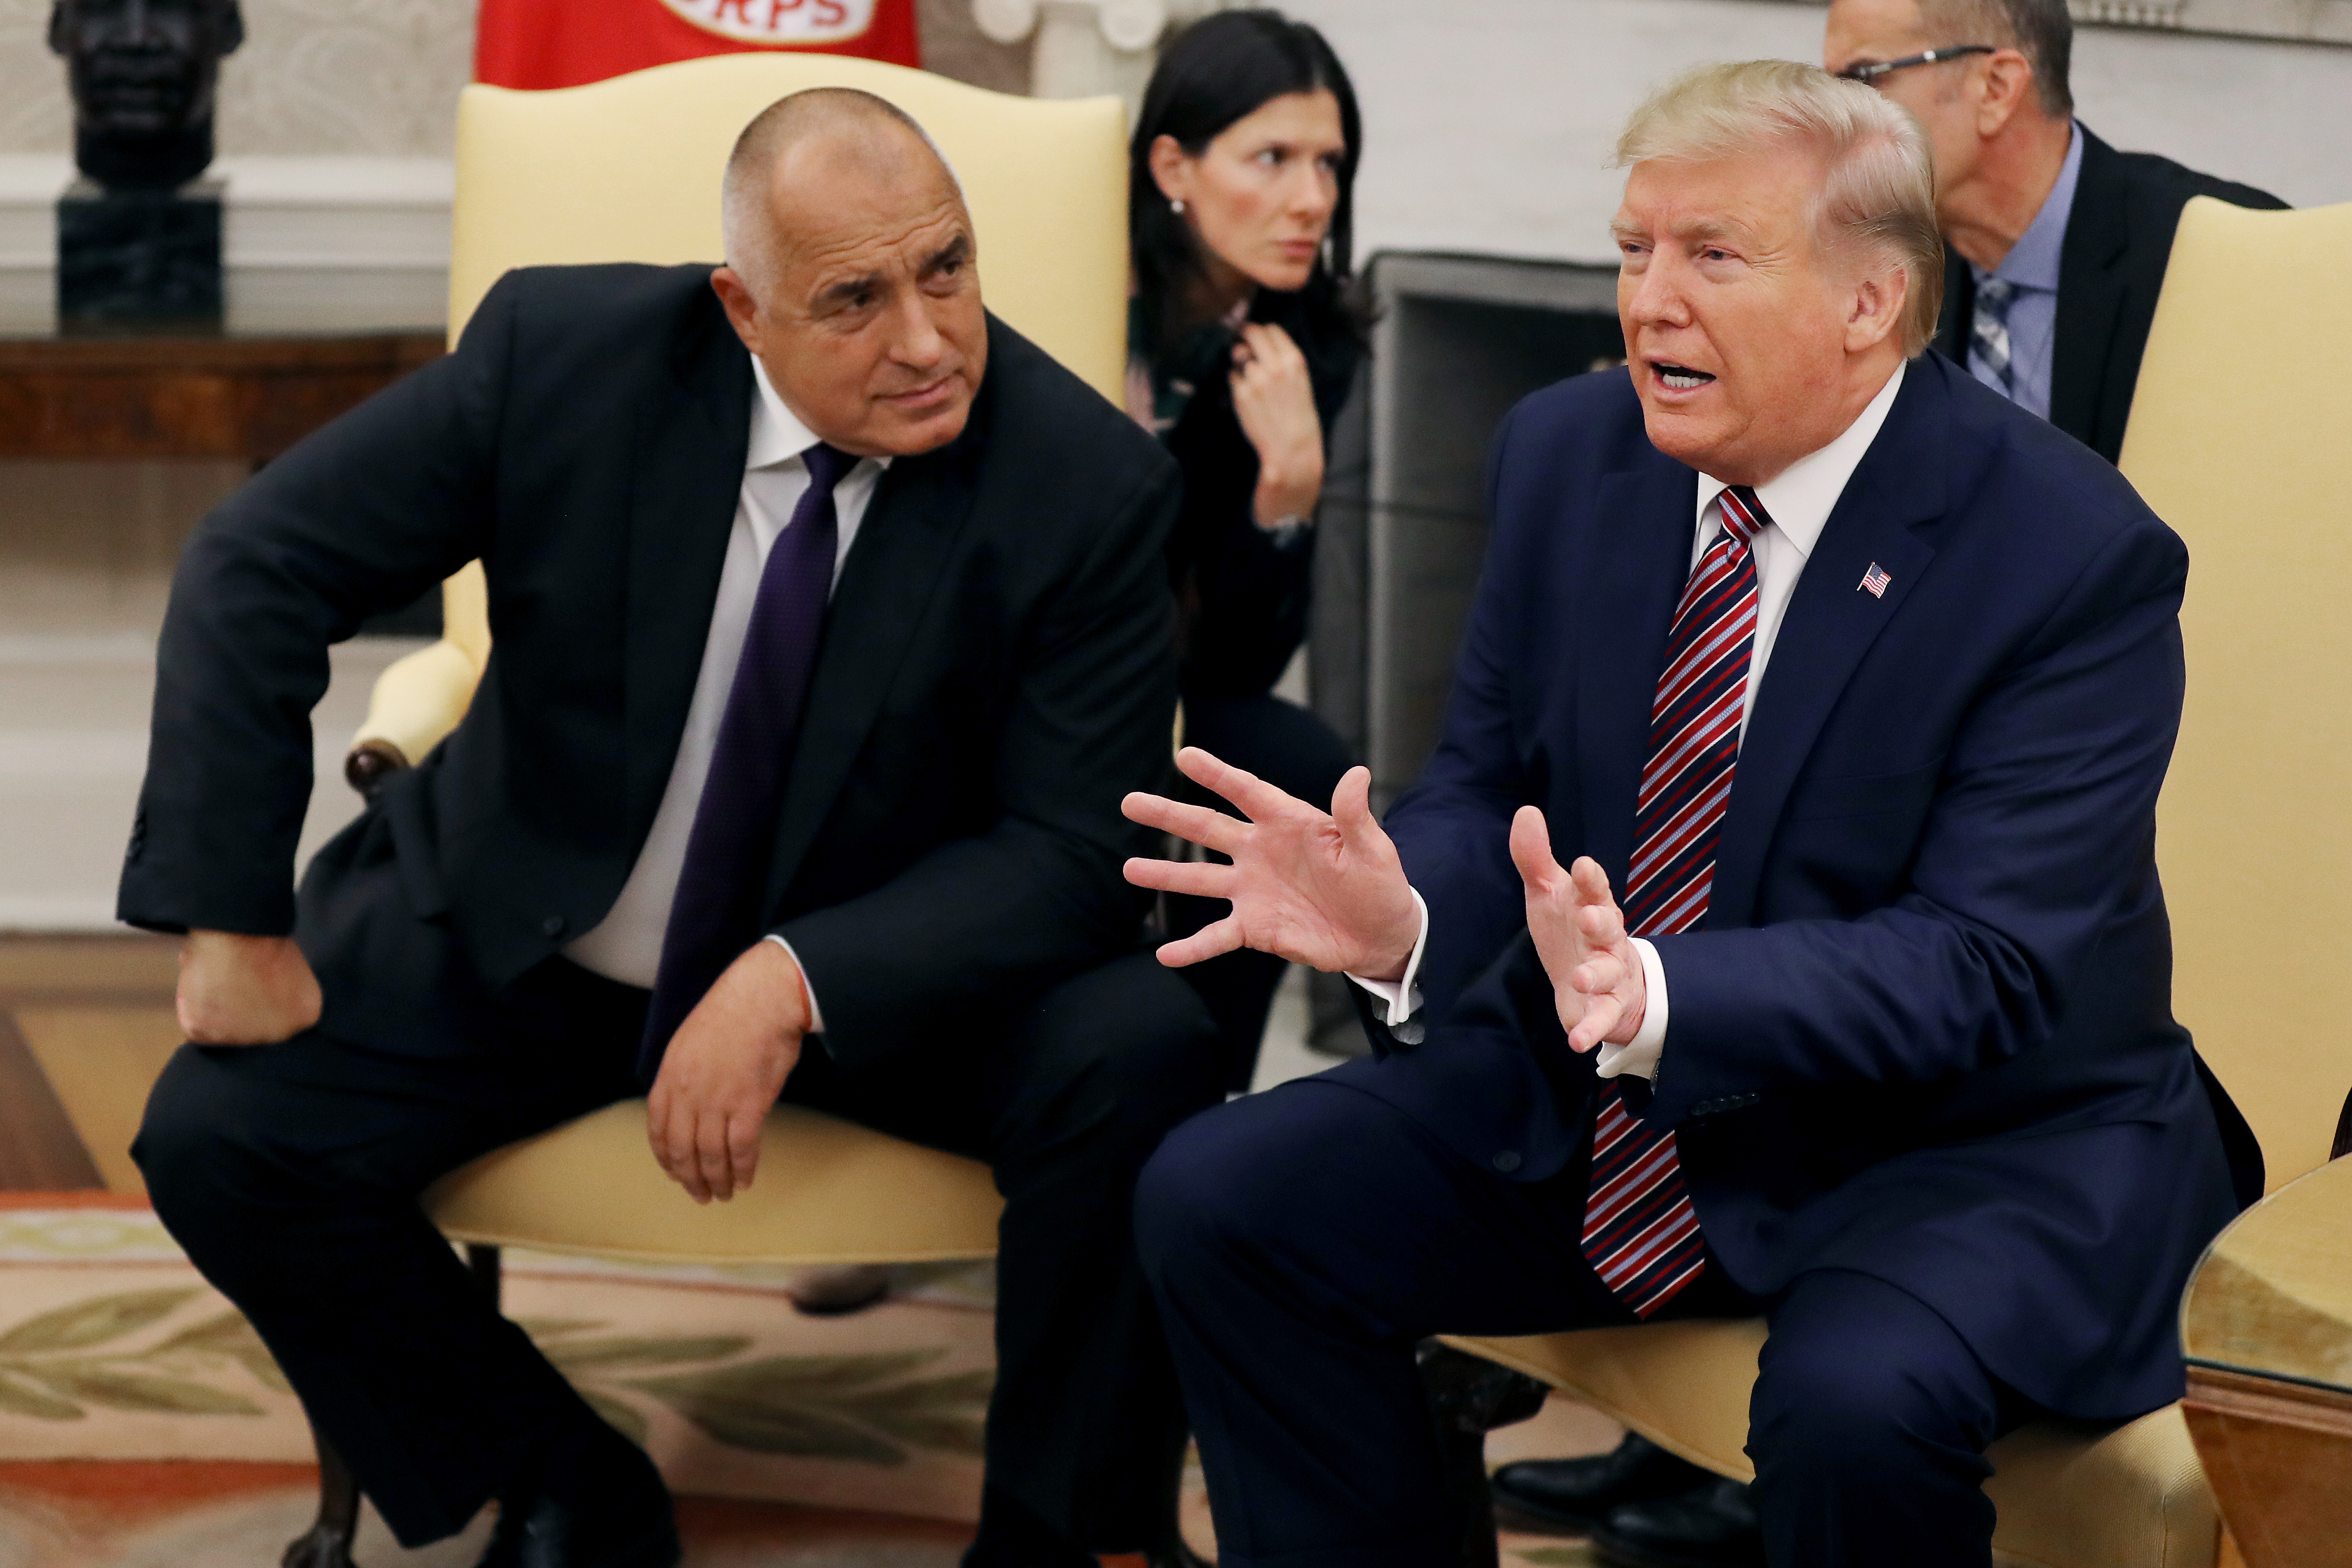 President Donald Trump had made the comments during a press conference with Bulgarian Prime Minister Boyko Borissov